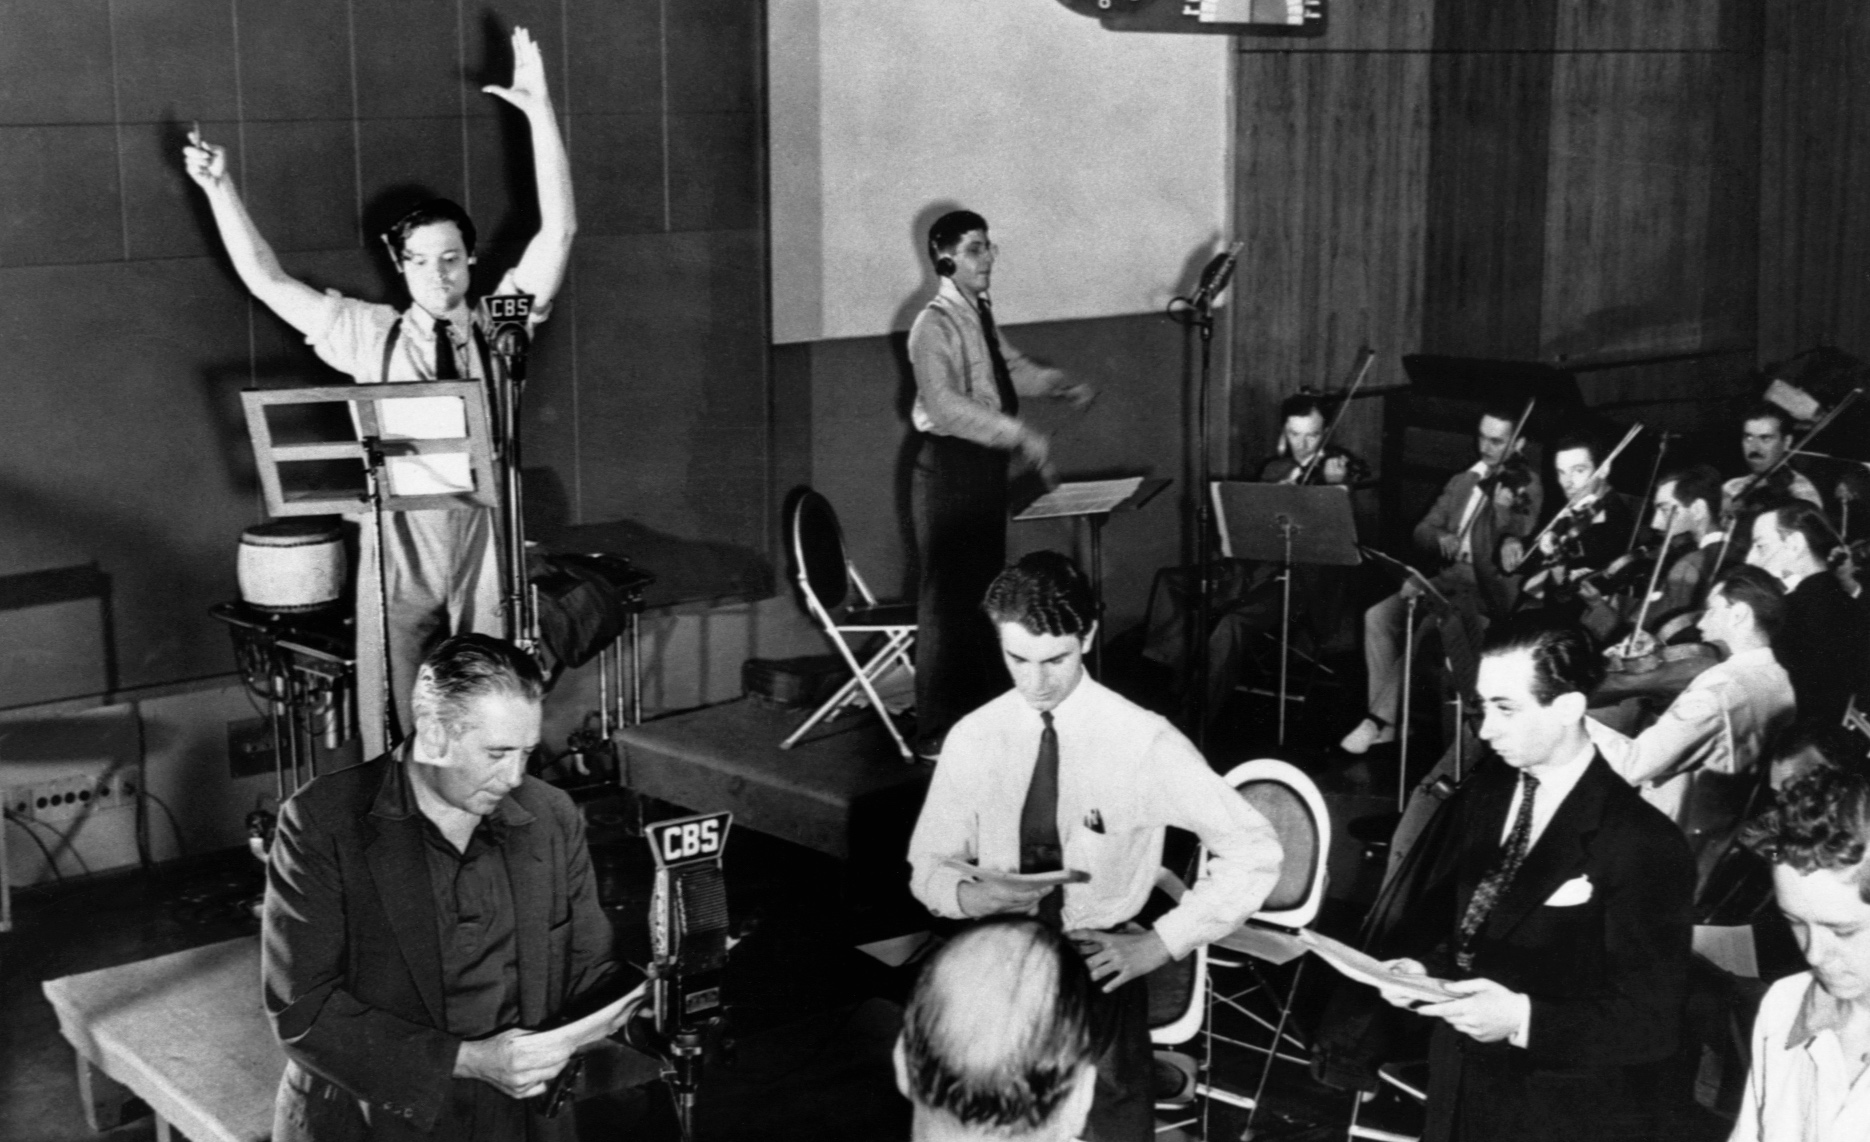 Orson welles arms upraised directing a rehearsal of cbs radio s the mercury theatre on the air 1938